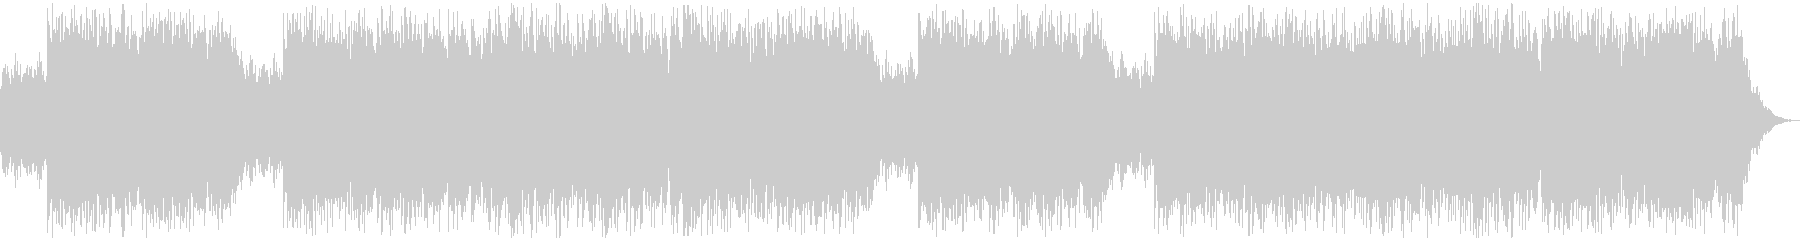 Expressing how it snows on a piano, etc.'s unreproduced waveform